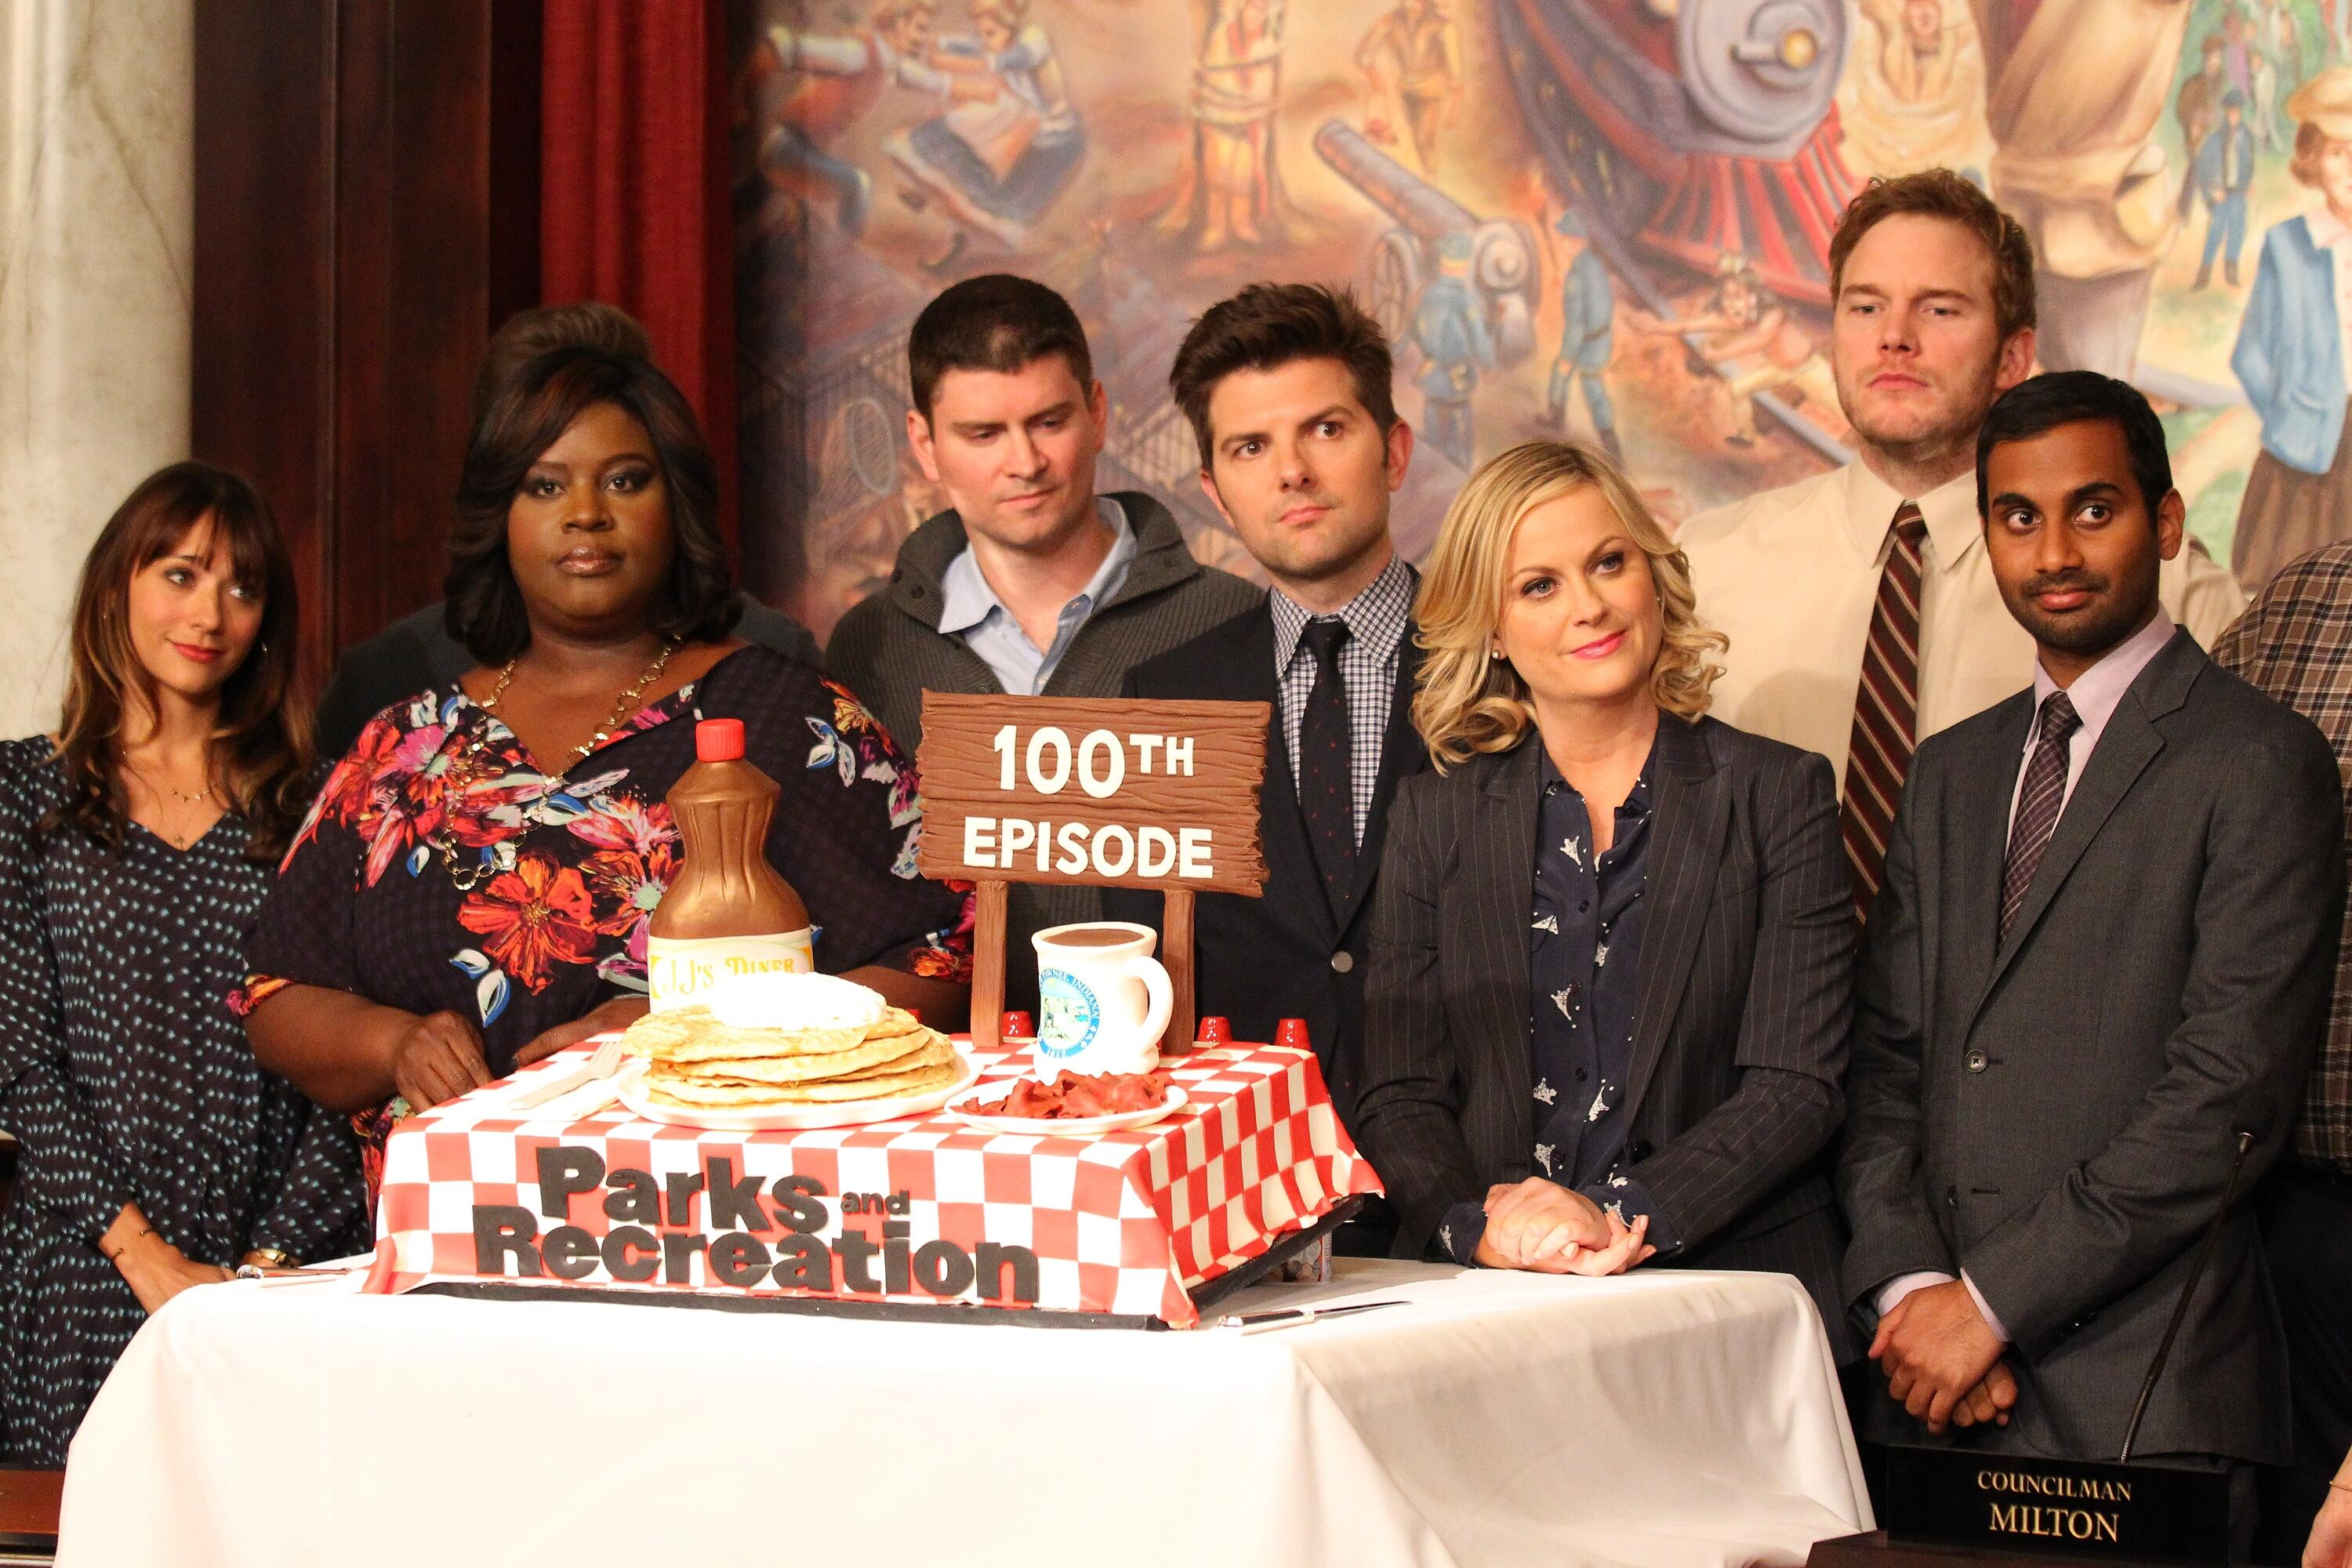 Parks and Recreation' Is Officially Leaving Netflix